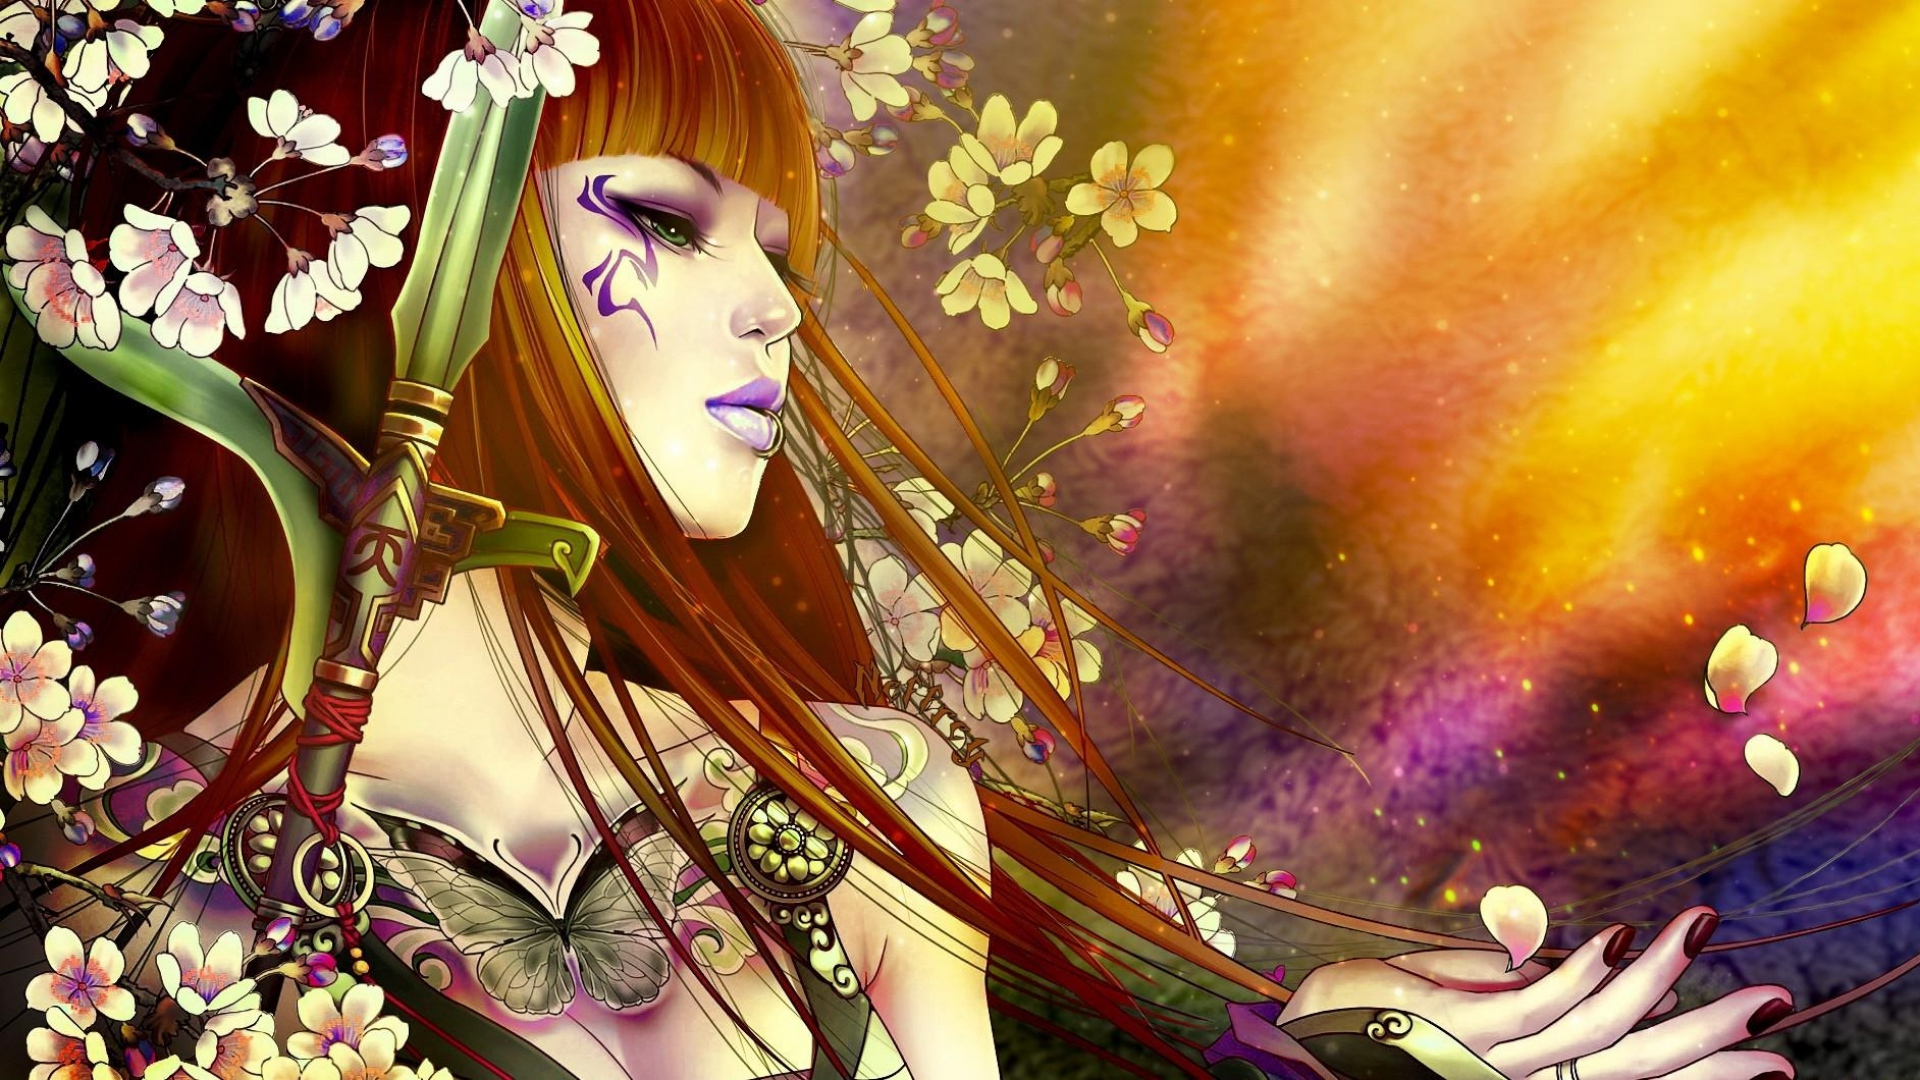 girl-hair-flowers-hand-petals-sword-1920x1080